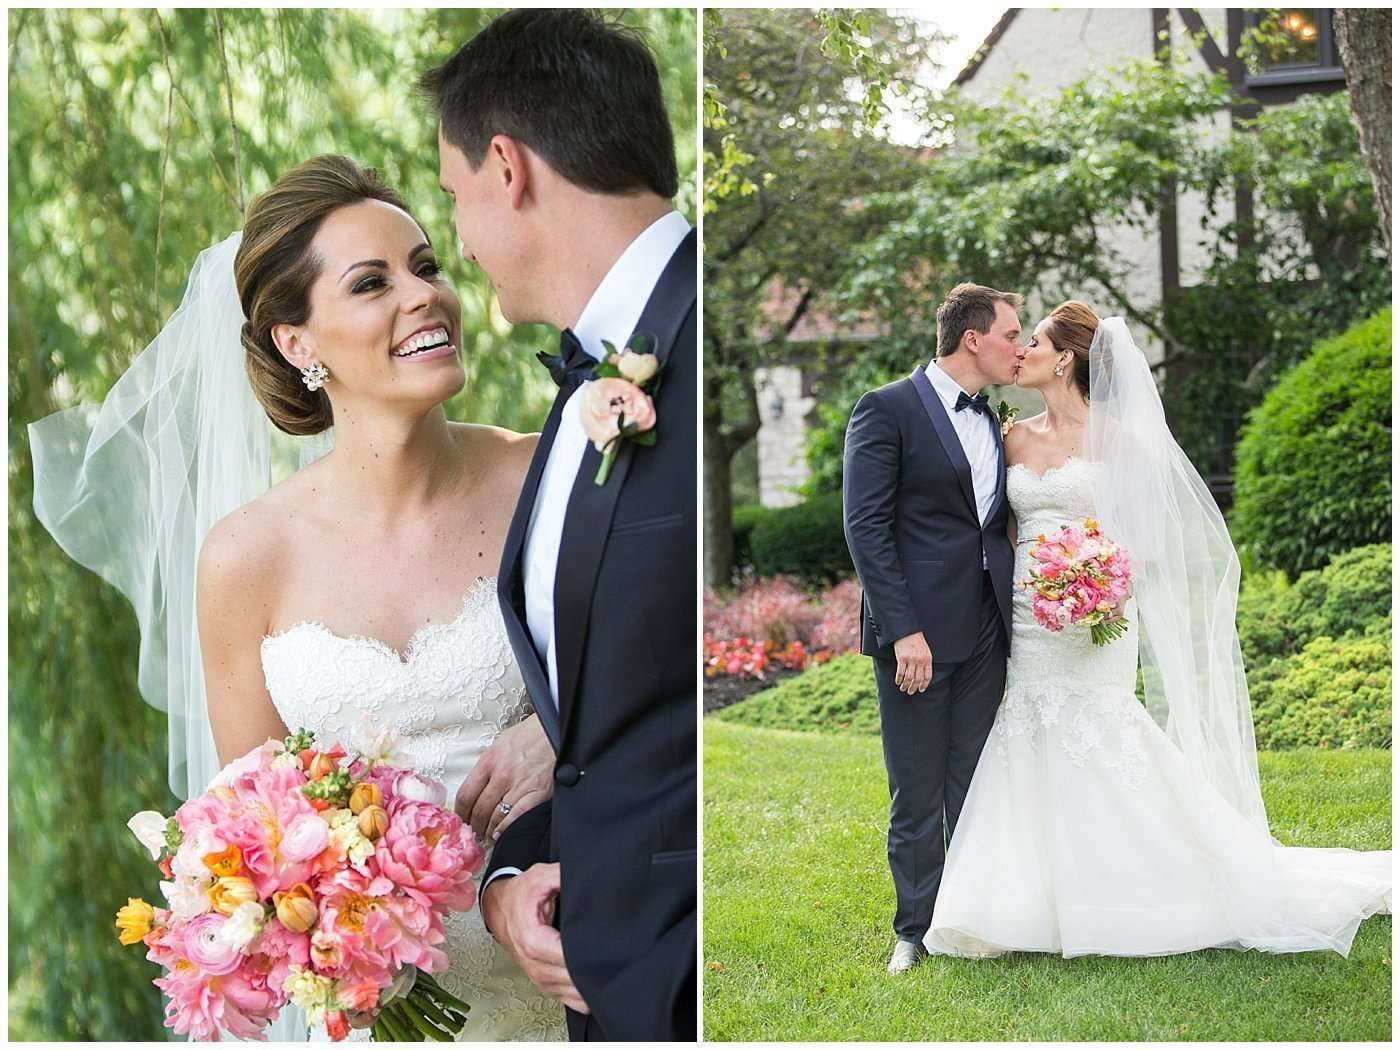 Kim & Lee | A Summer Wedding at Brookside Country Club 72